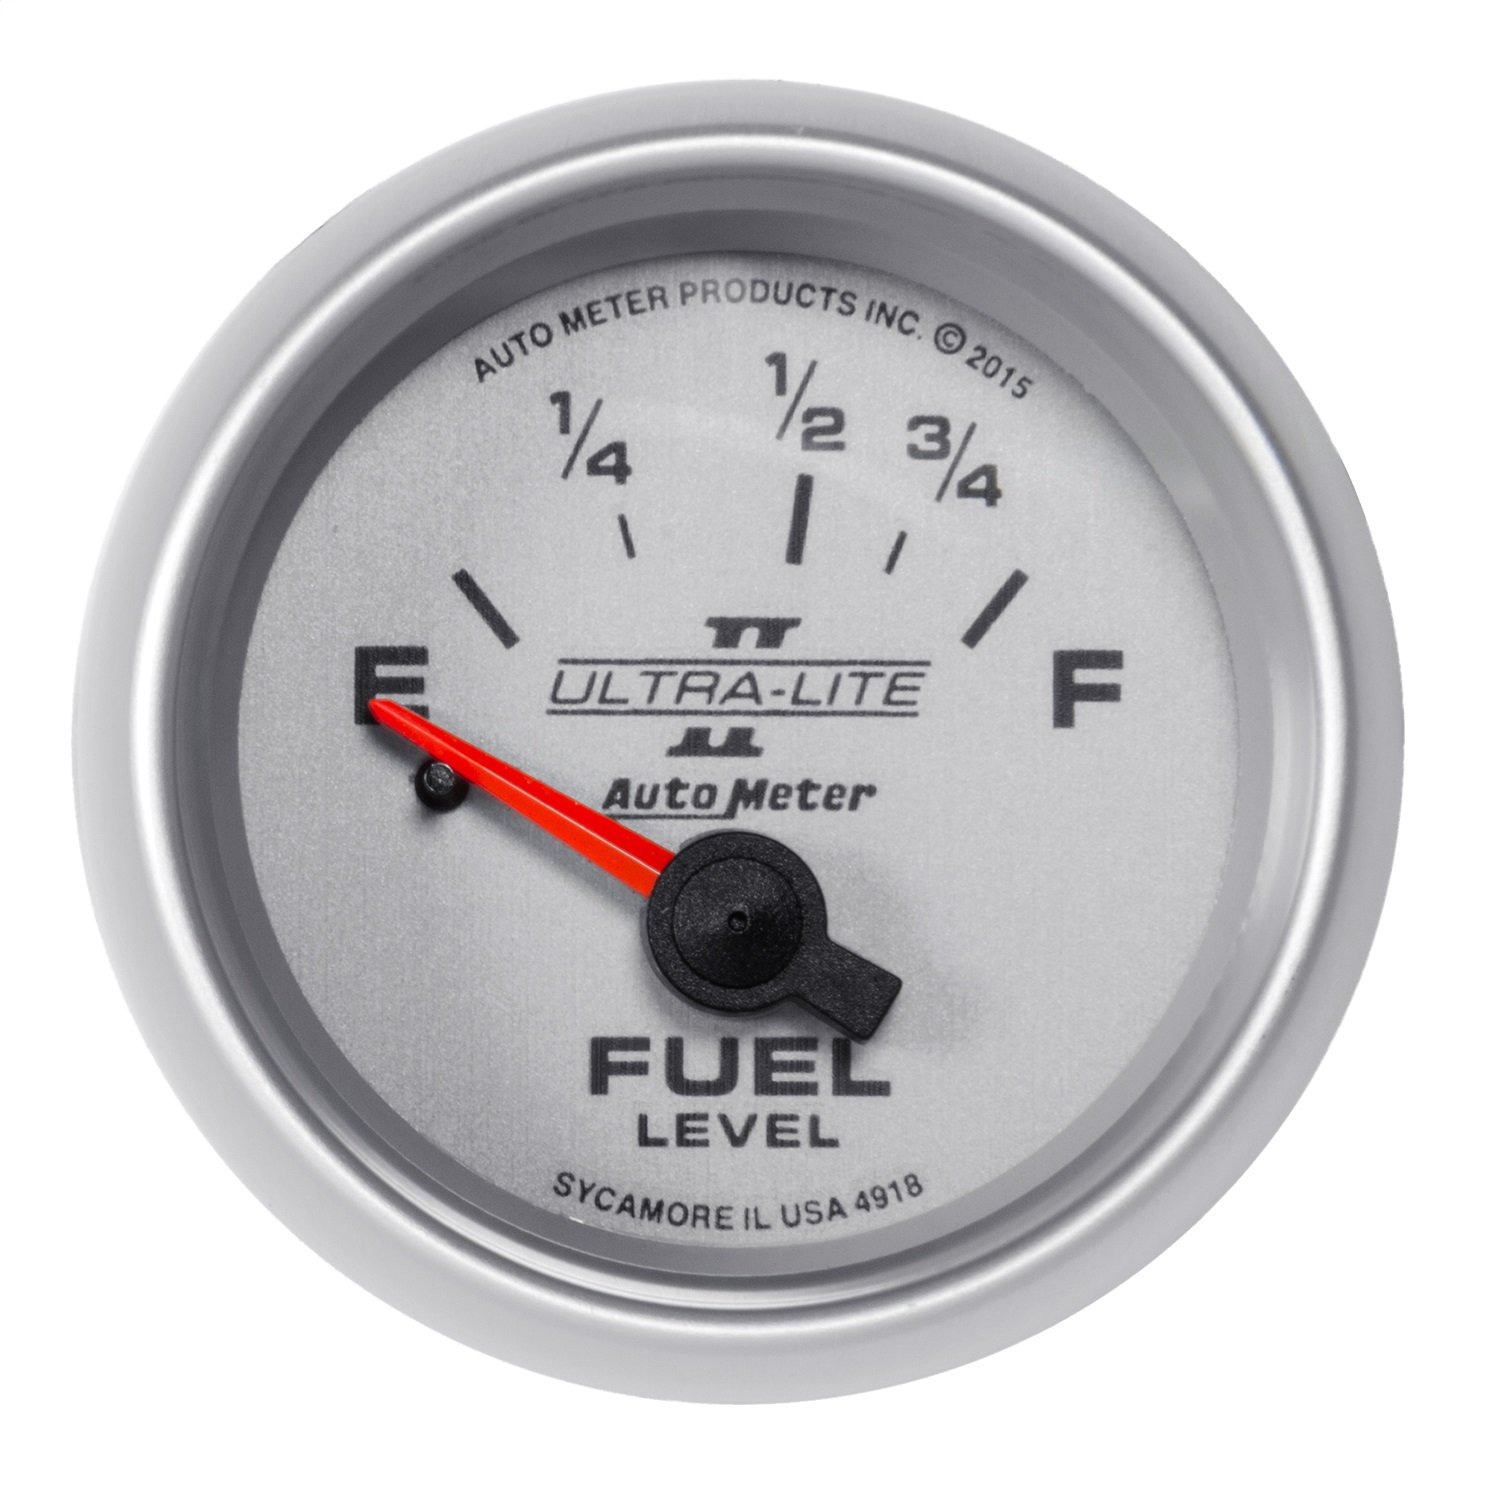 Auto Meter 4918 Fuel Level Gauge 2 116 16Oe to 158Of Elec Ultra-Lite Ii